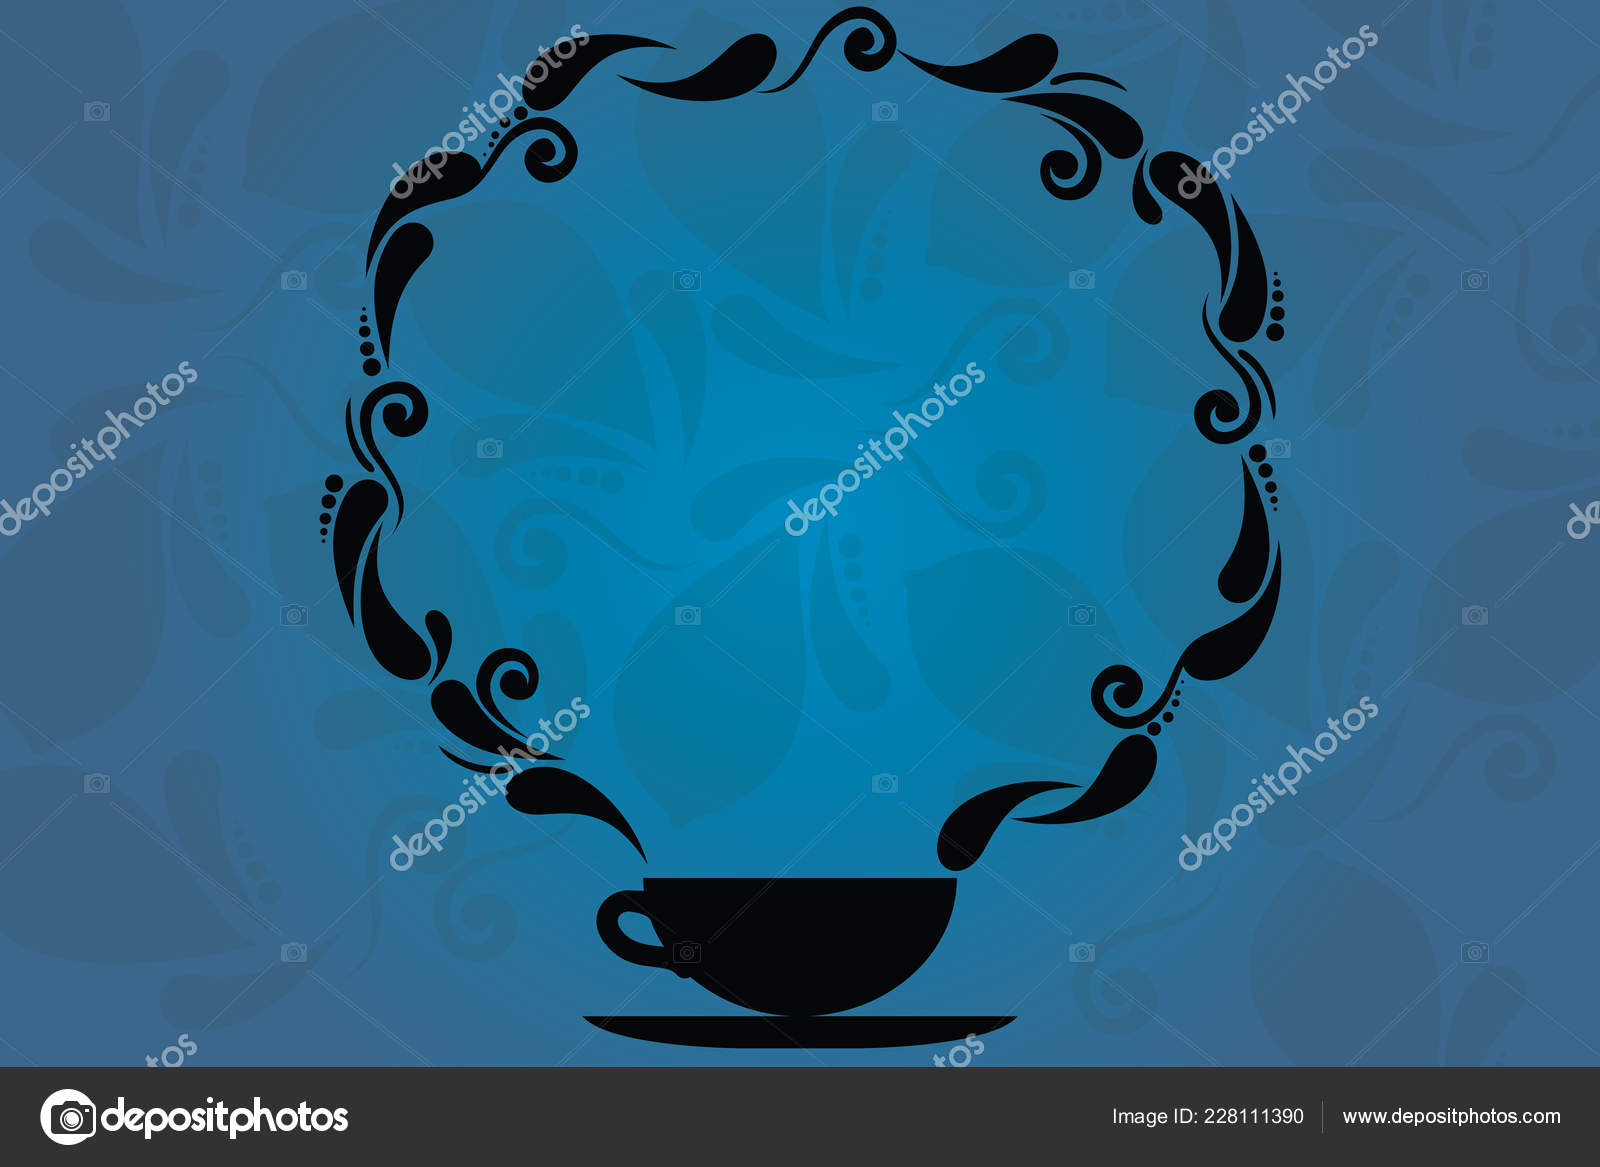 Design Business Empty Copy Space Text For Ad Website Promotion Isolated Banner Template Cup And Saucer With Paisley Design As Steam Icon On Blank Watermarked Space Stock Vector C Artursz 228111390